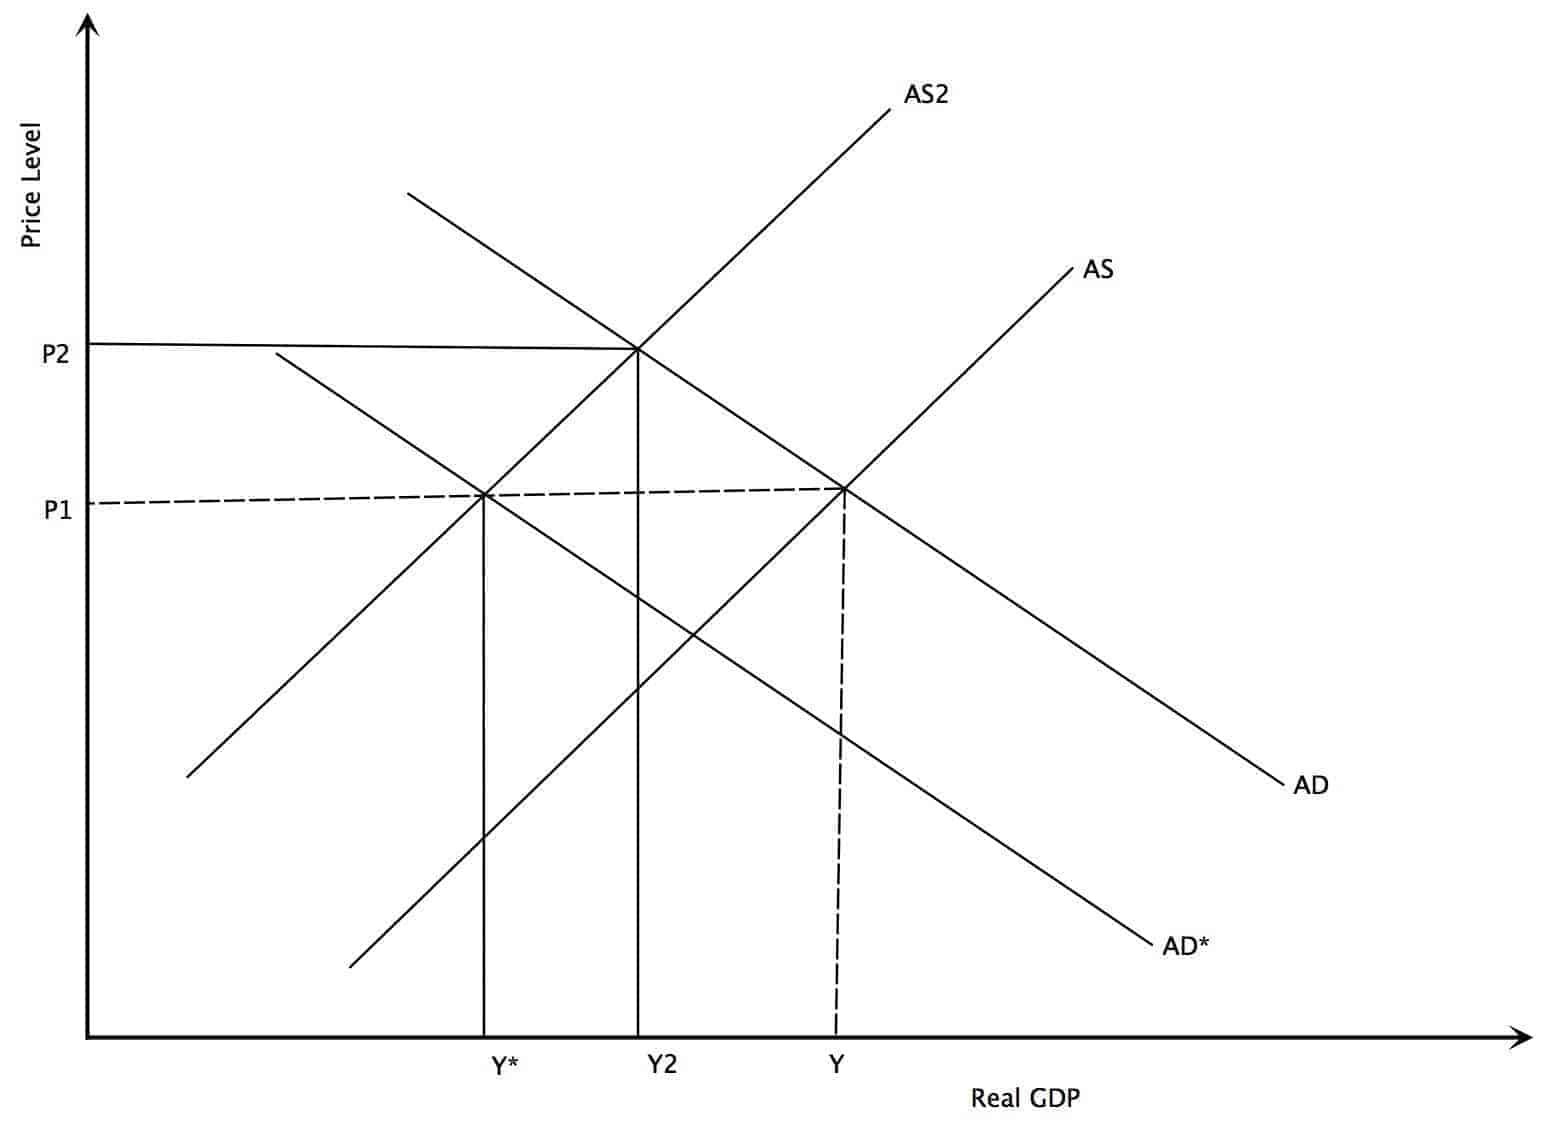 What are the factors and implications of inflation/high prices? How do you deal with it?